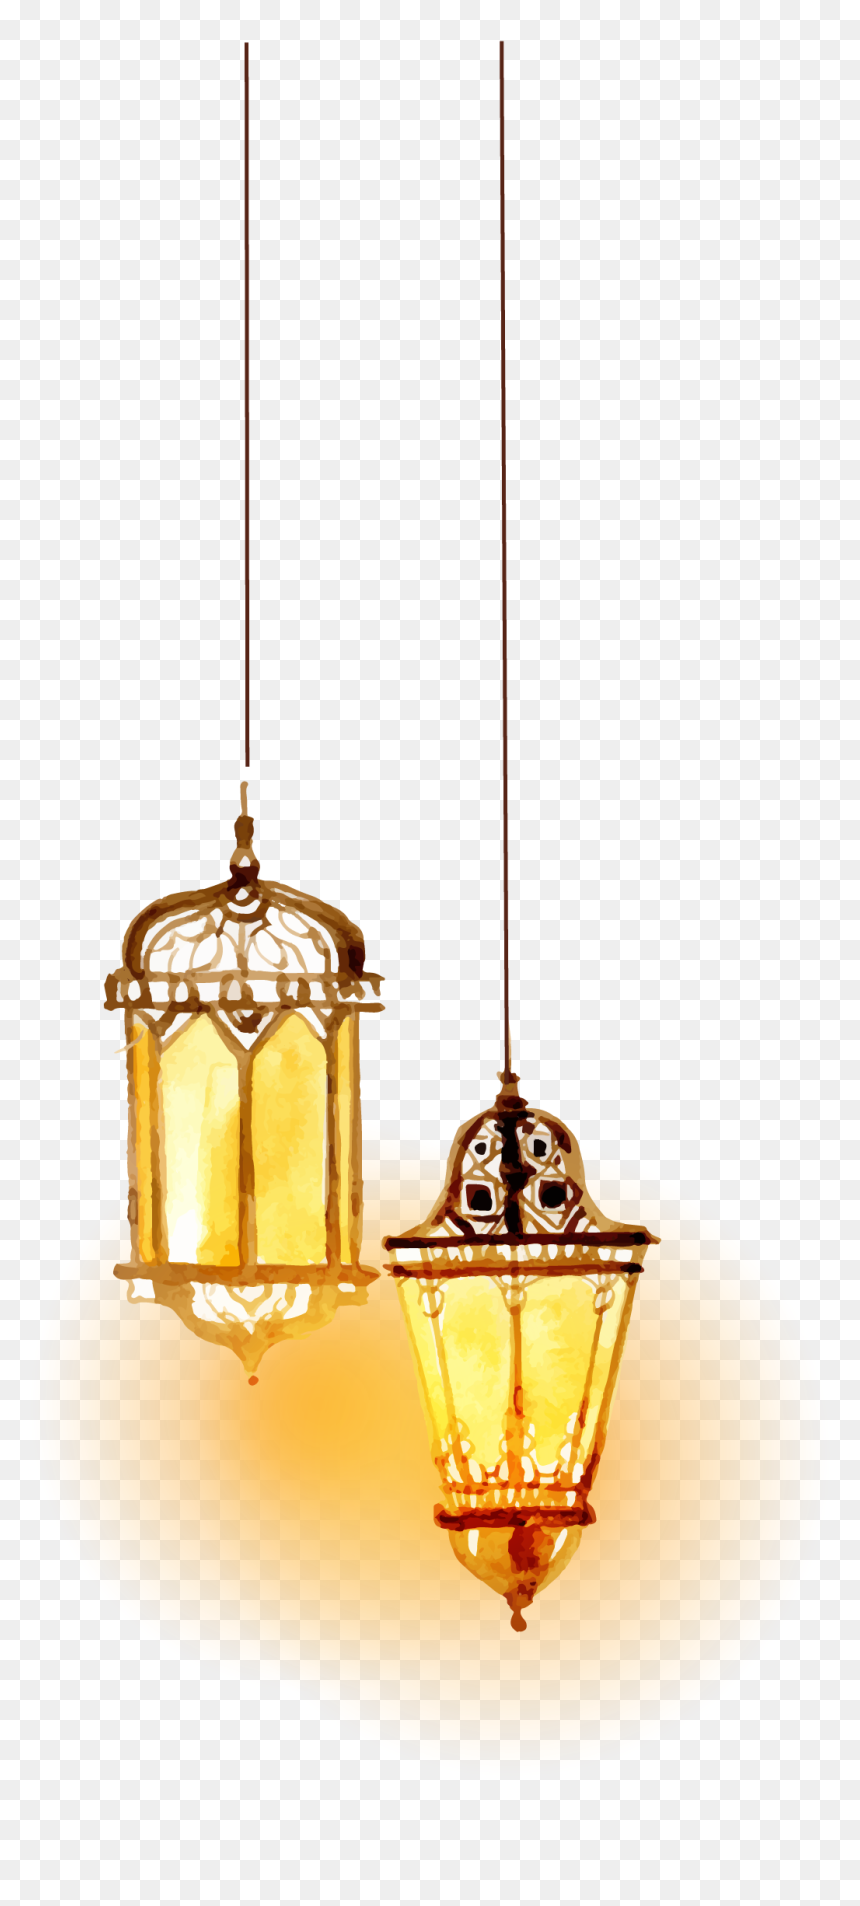 Transparent Islamic Lamp Png, Png Download